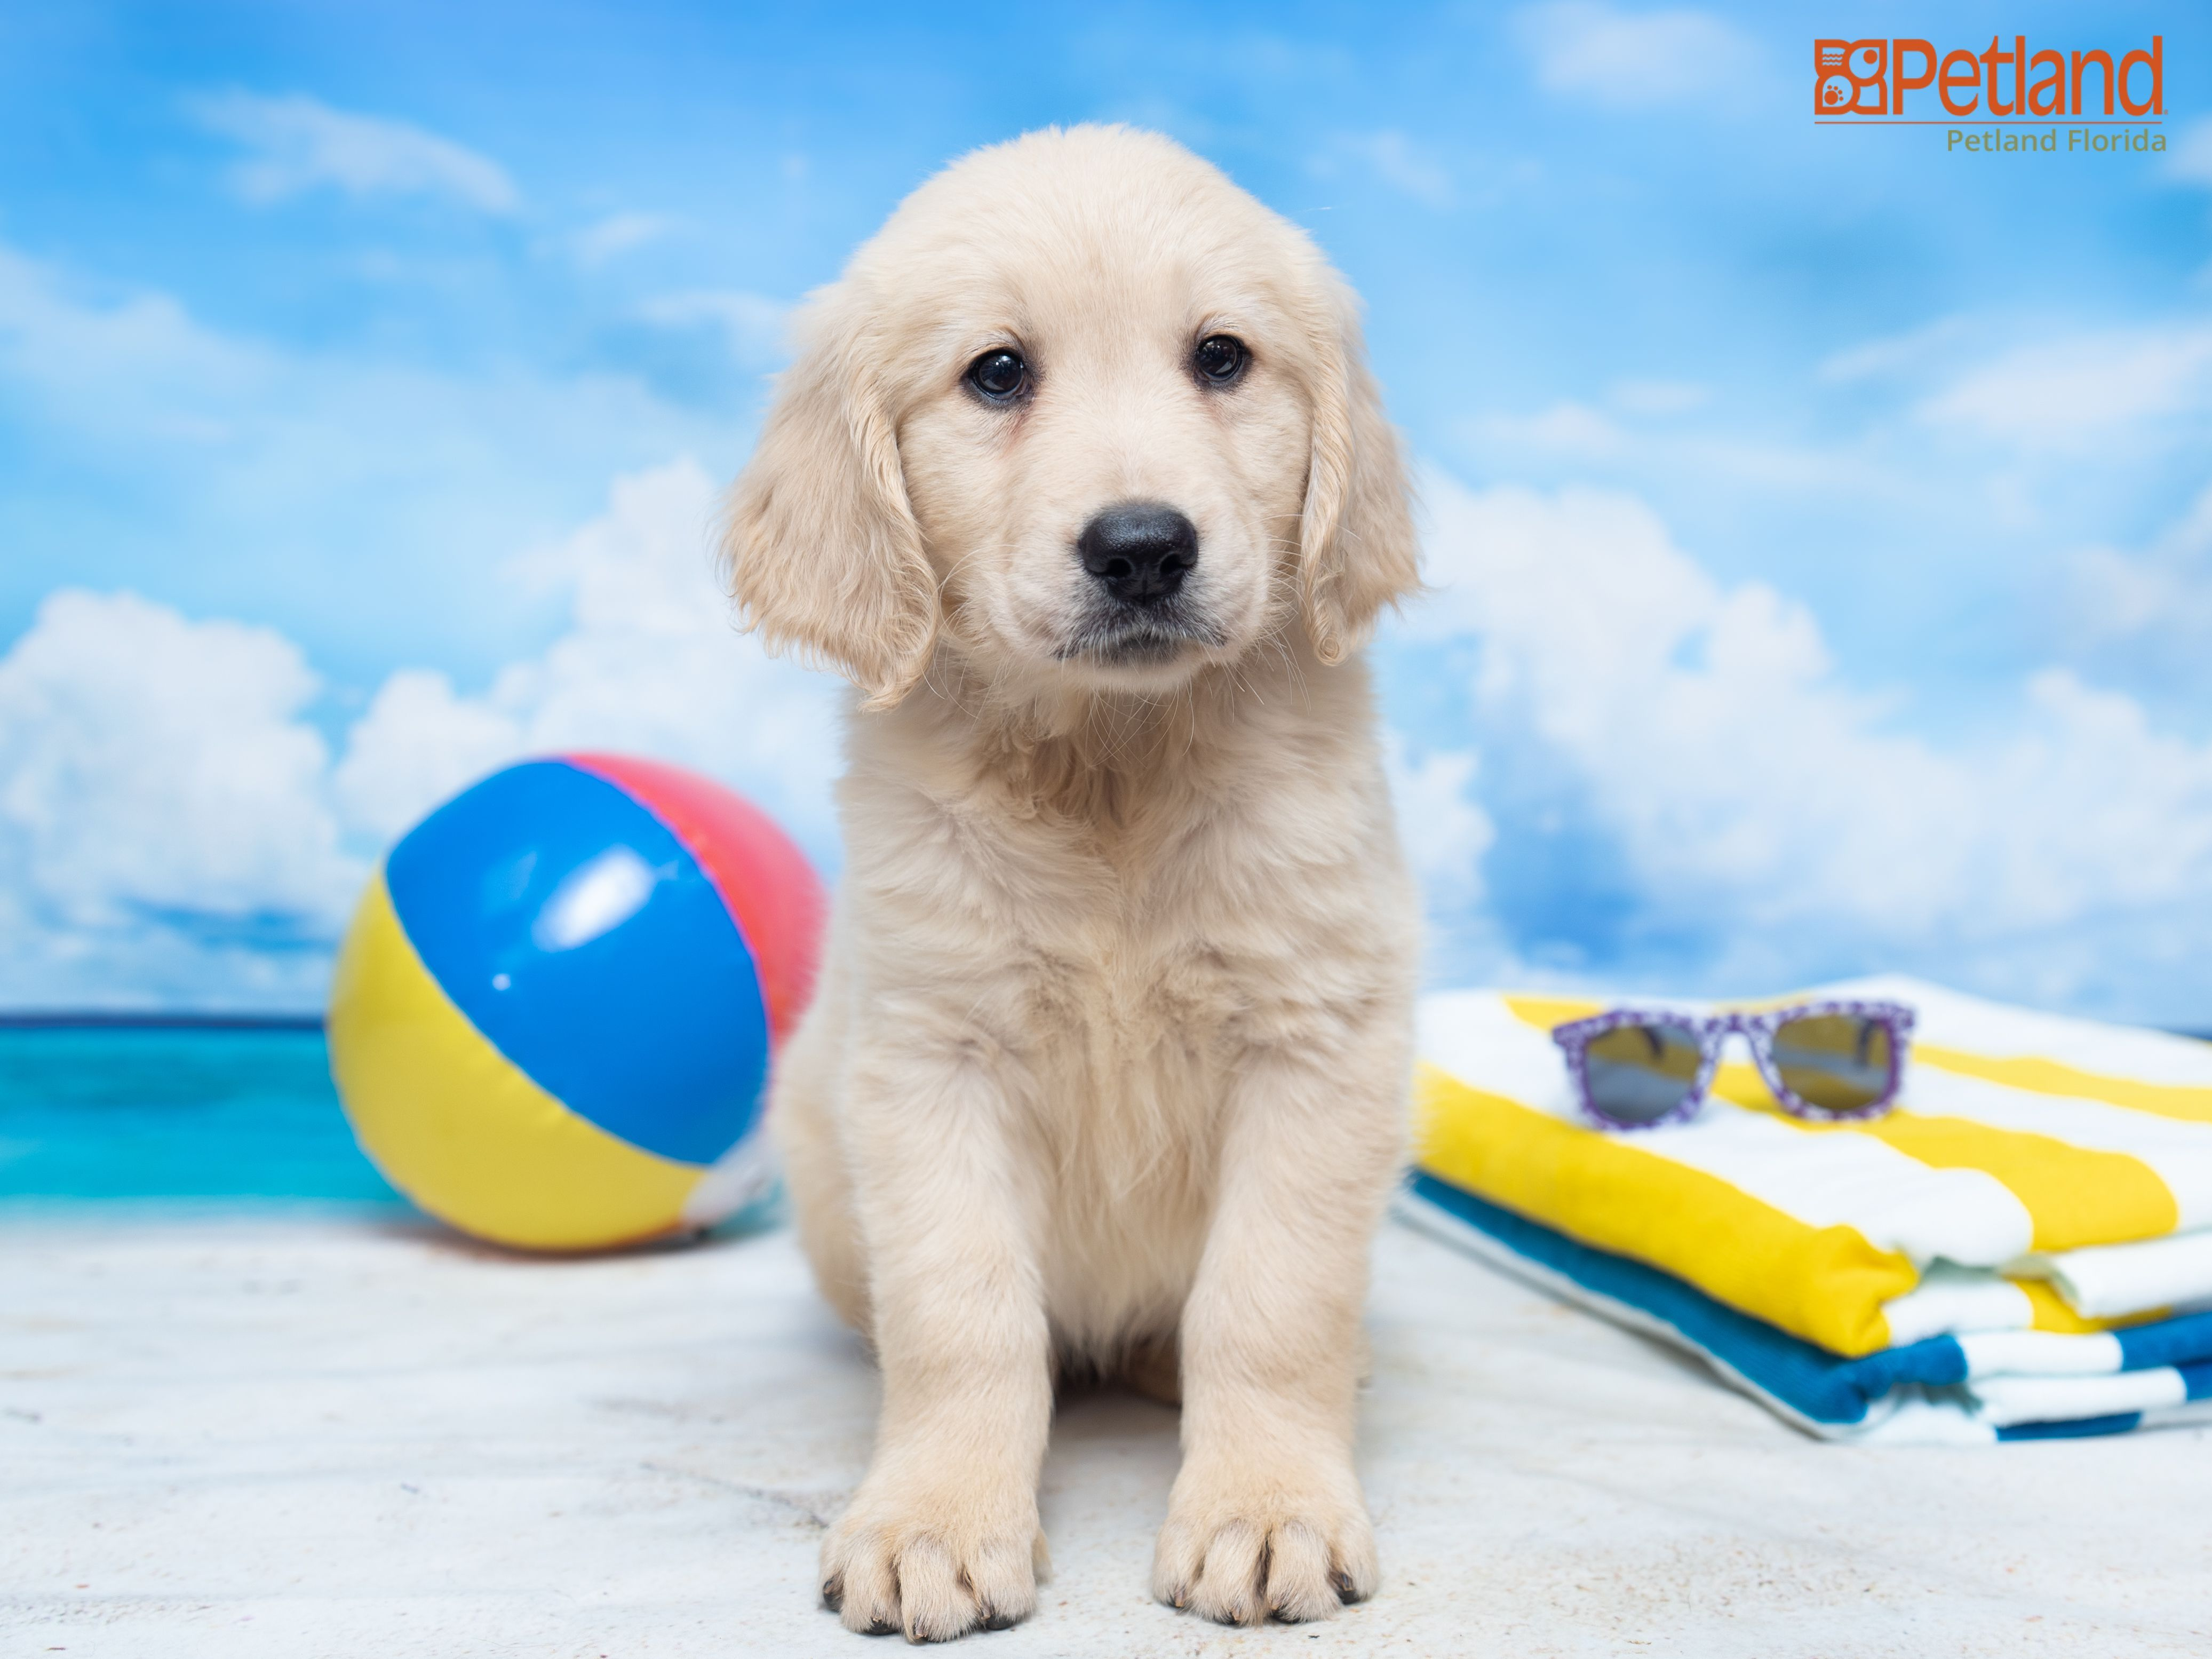 Petland Florida Has Golden Retriever Puppies For Sale Check Out All Our Available Puppies Goldenretriever Puppy Doglover Adorable Dog Cute Pet Dogof En 2020